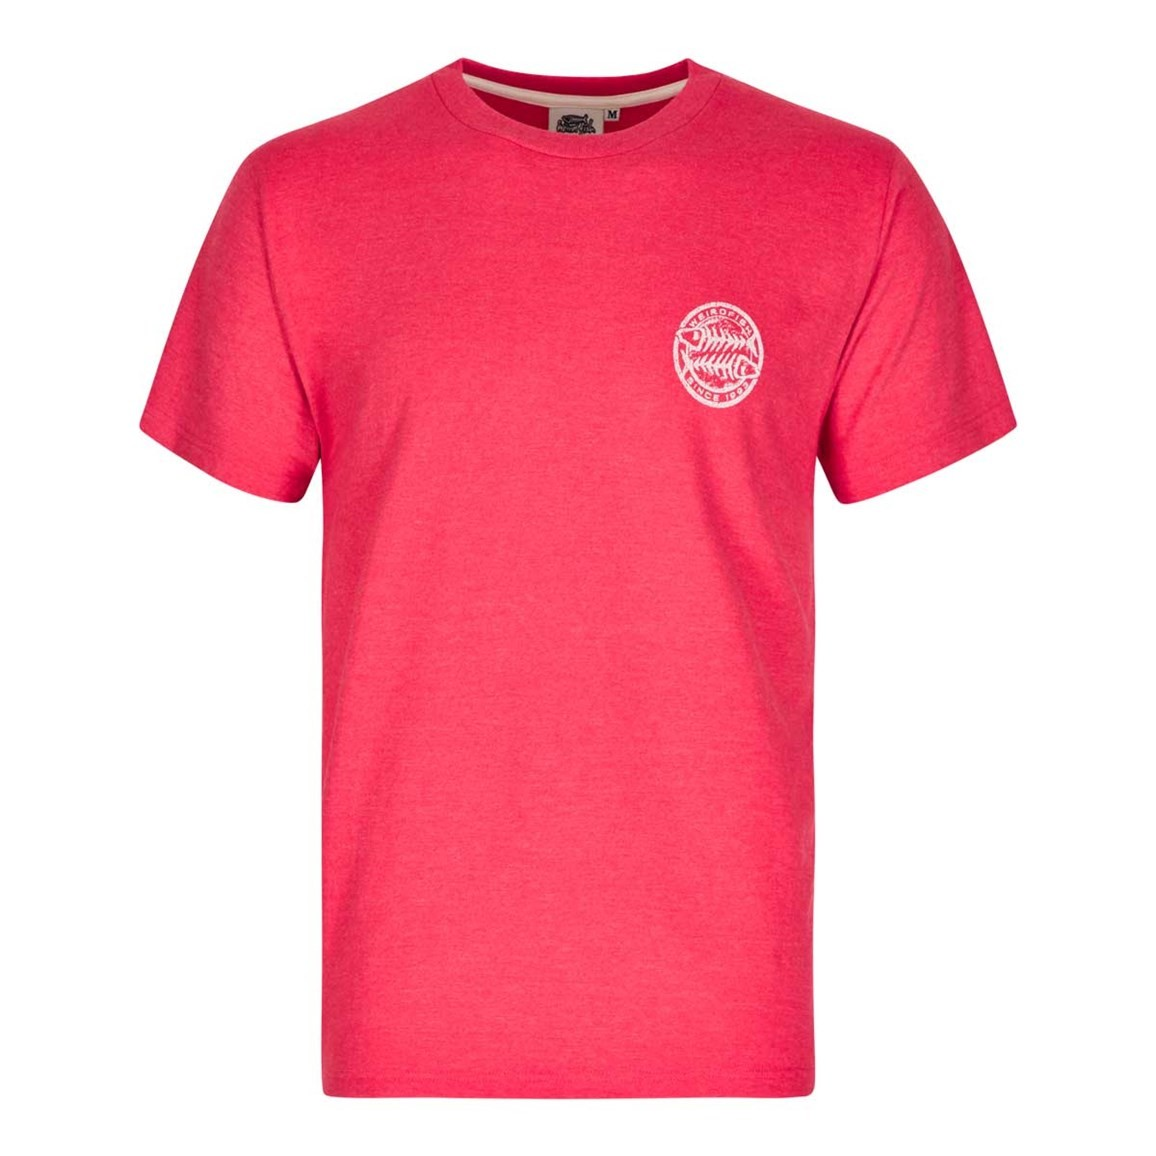 Heritage surf graphic print t shirt barberry red marl for Graphic print t shirts